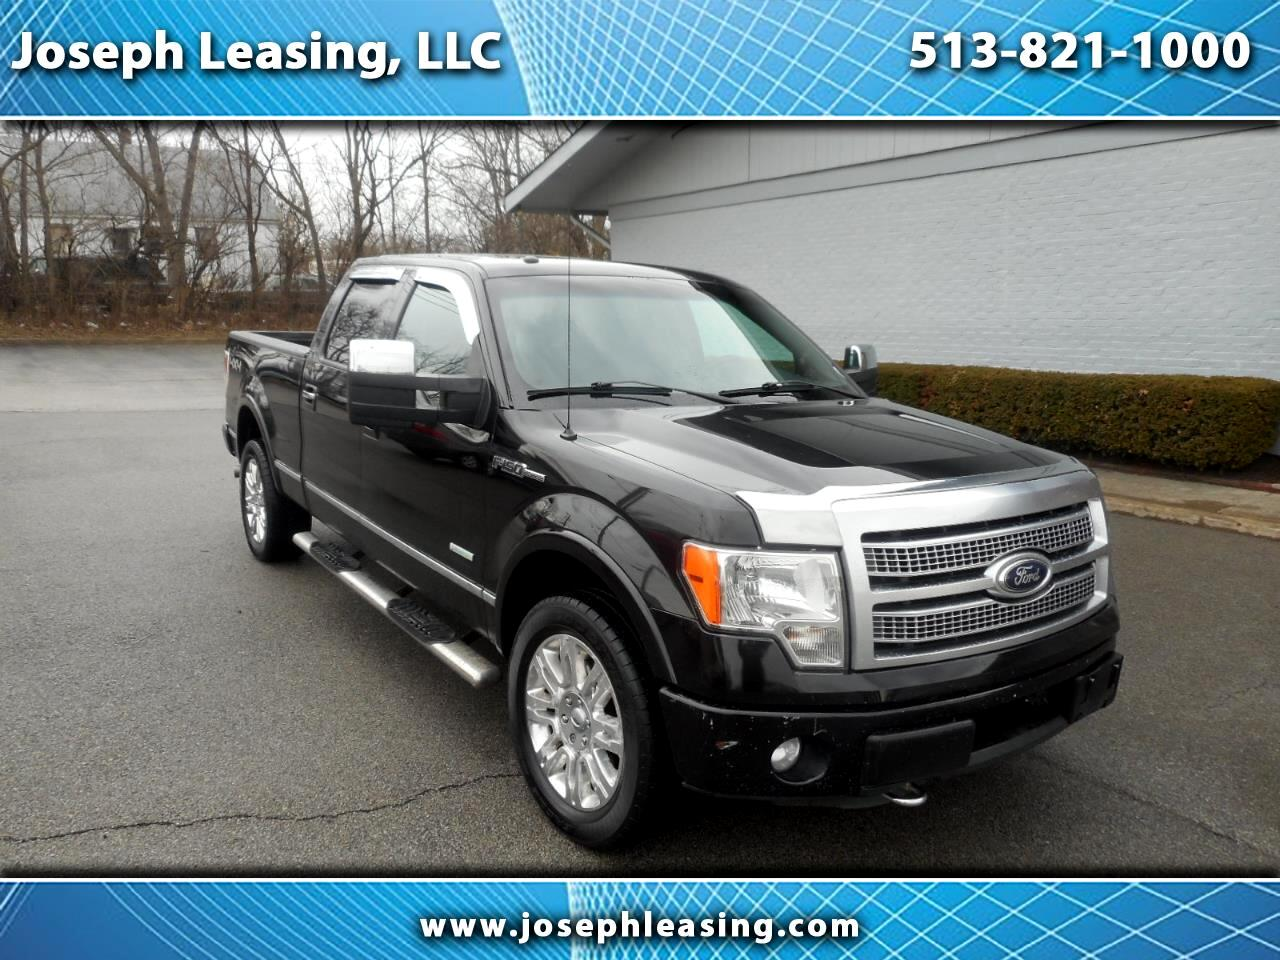 2012 Ford F-150 4WD SuperCrew Platinum